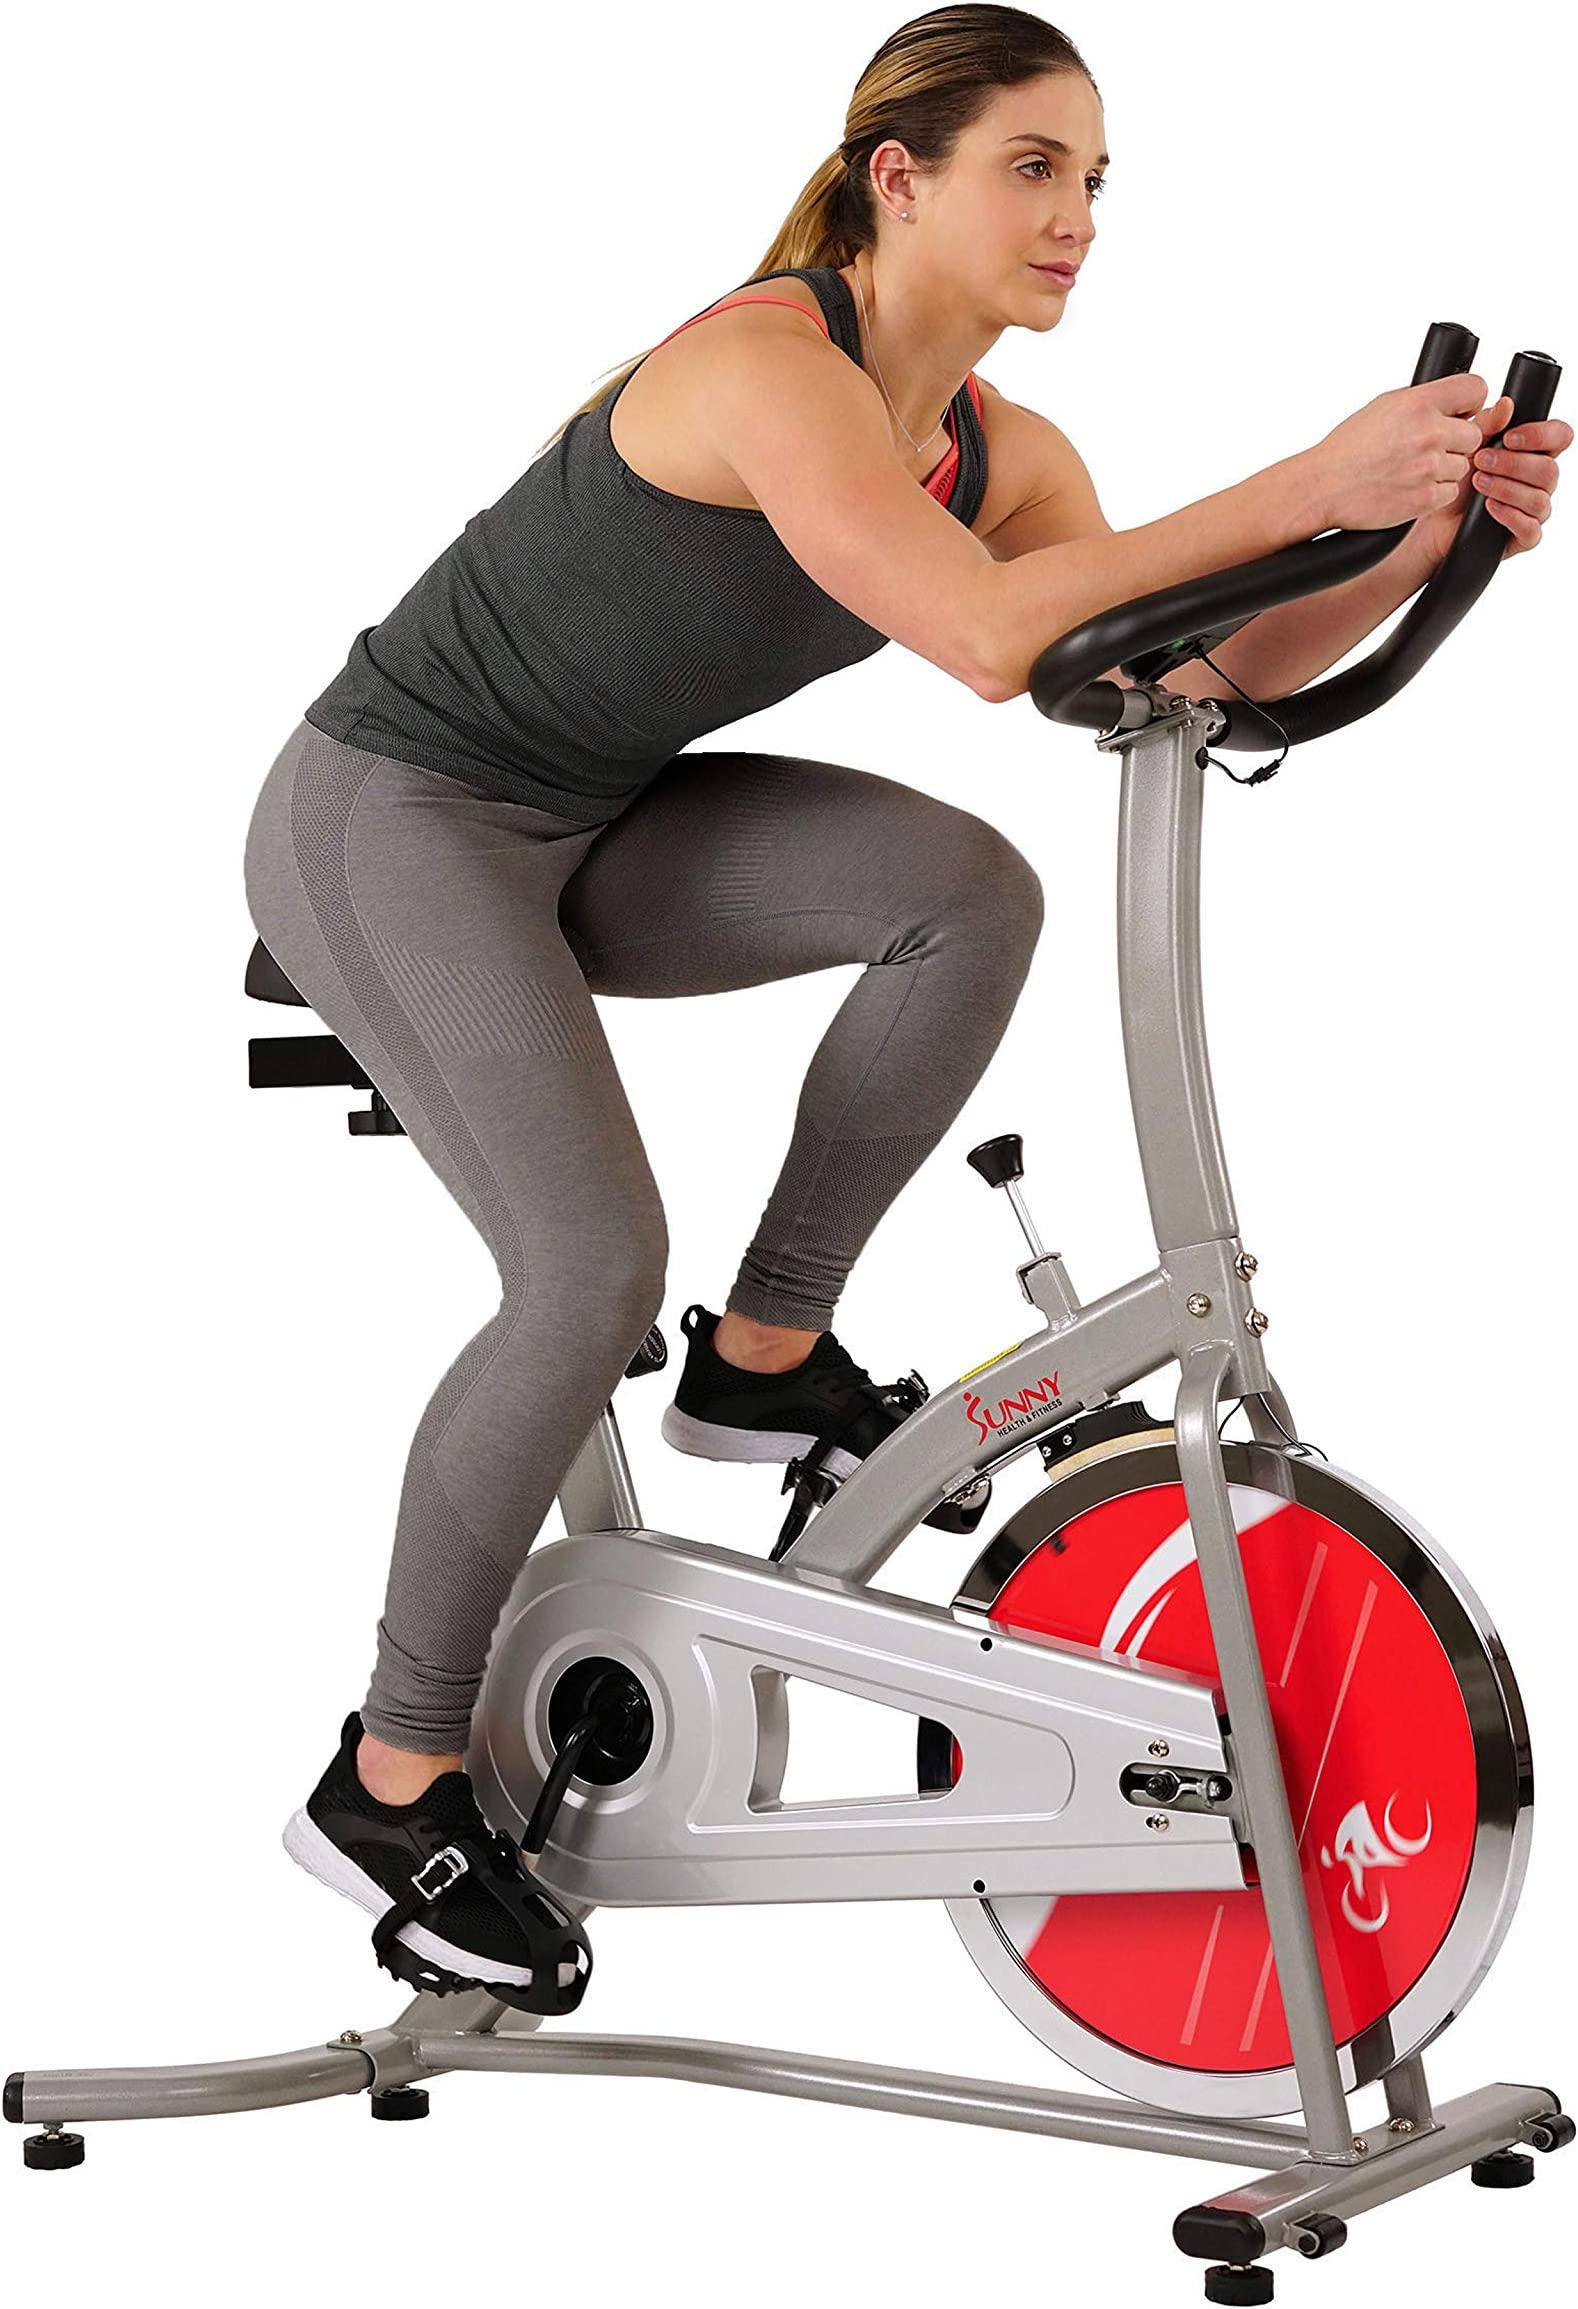 Sunny Health & Fitness Indoor Cycling Exercise Stationary Bike with Digital Monitor